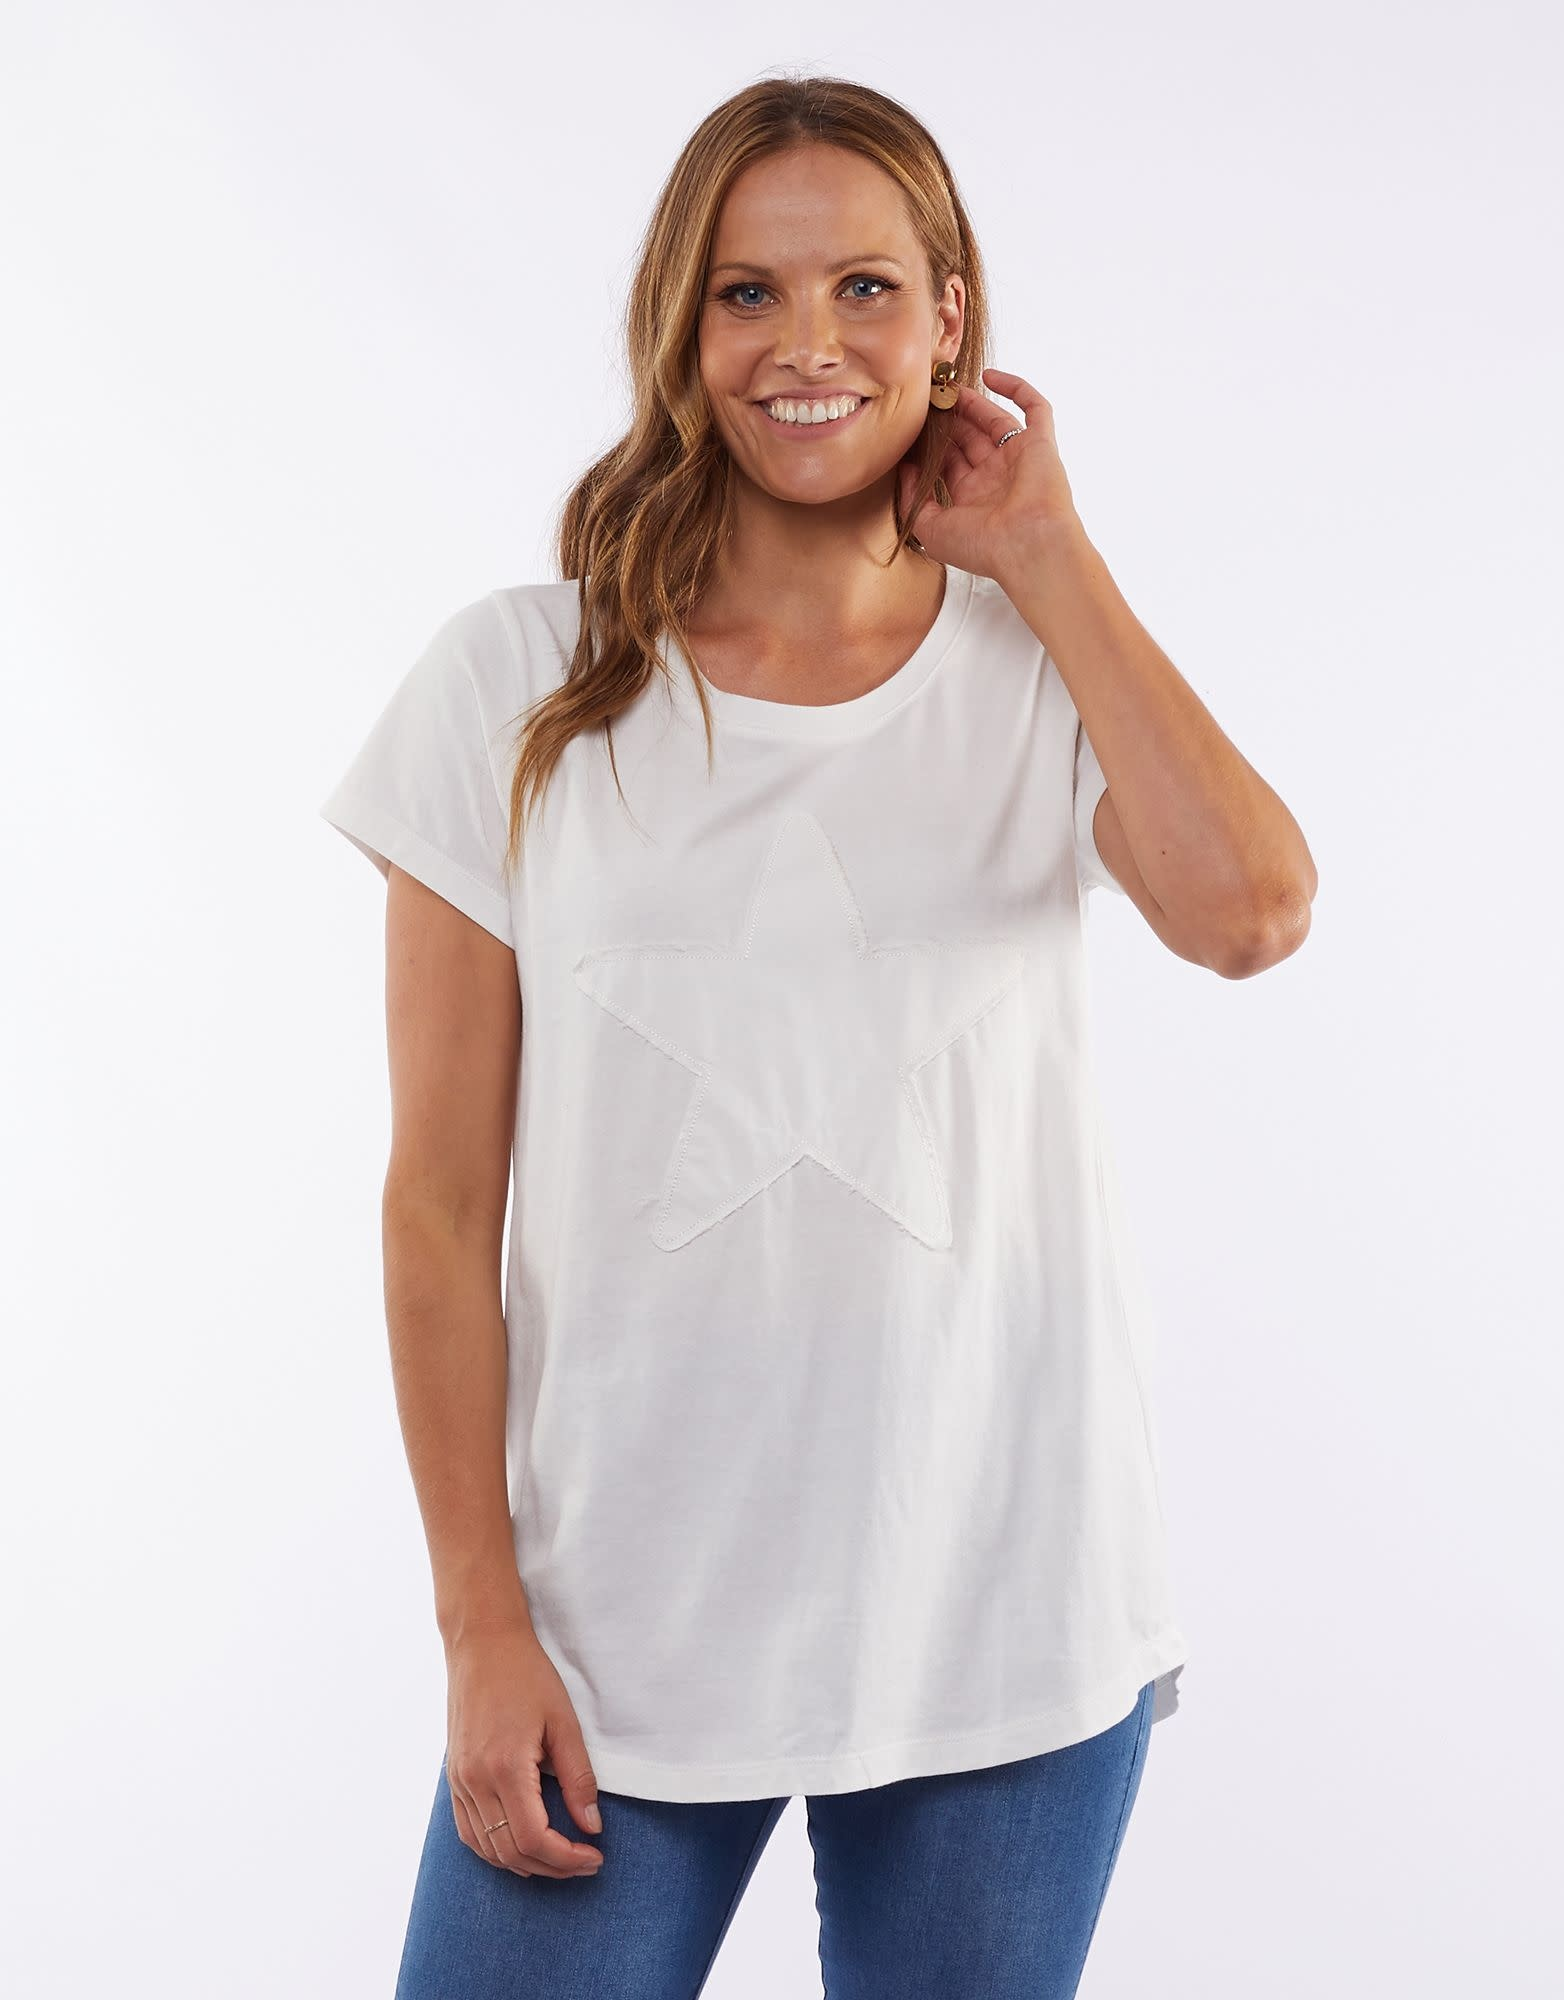 Elm Shine Bright tee